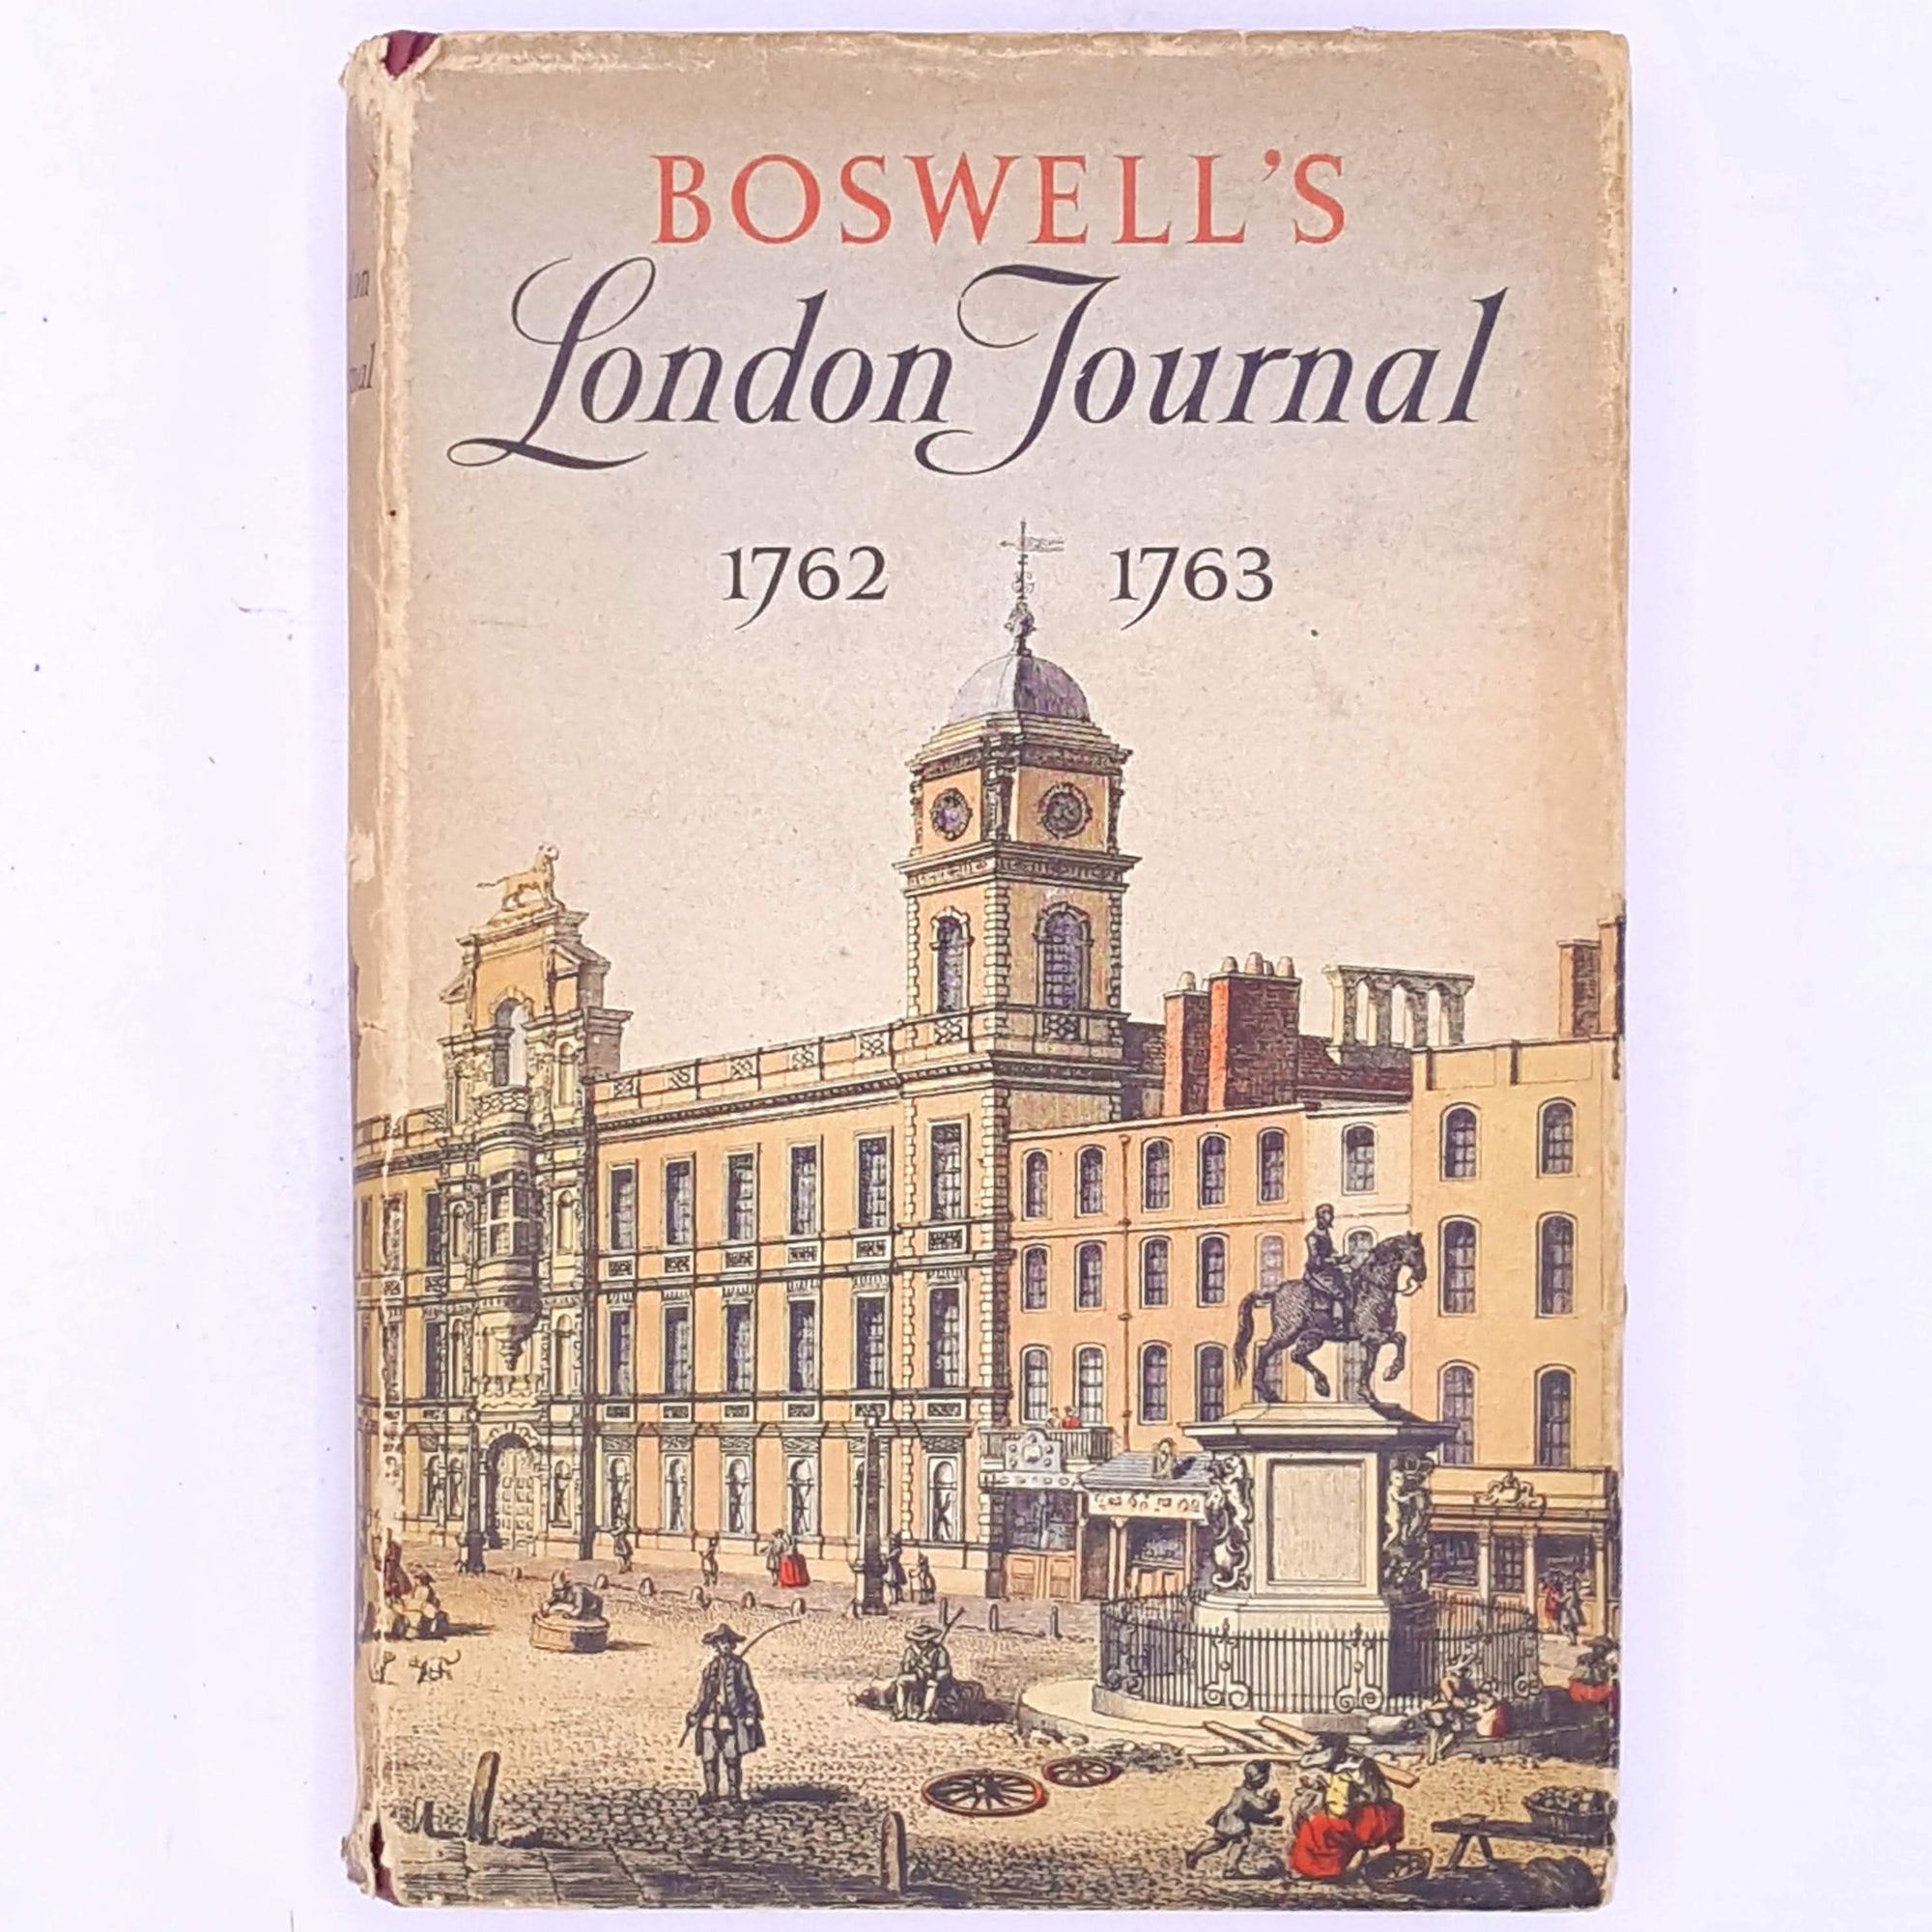 patterned-decorative-vintage-uk-books-antique-Boswell's-London-Journal -england-classic-thrift-country-house-library-history-london-old-